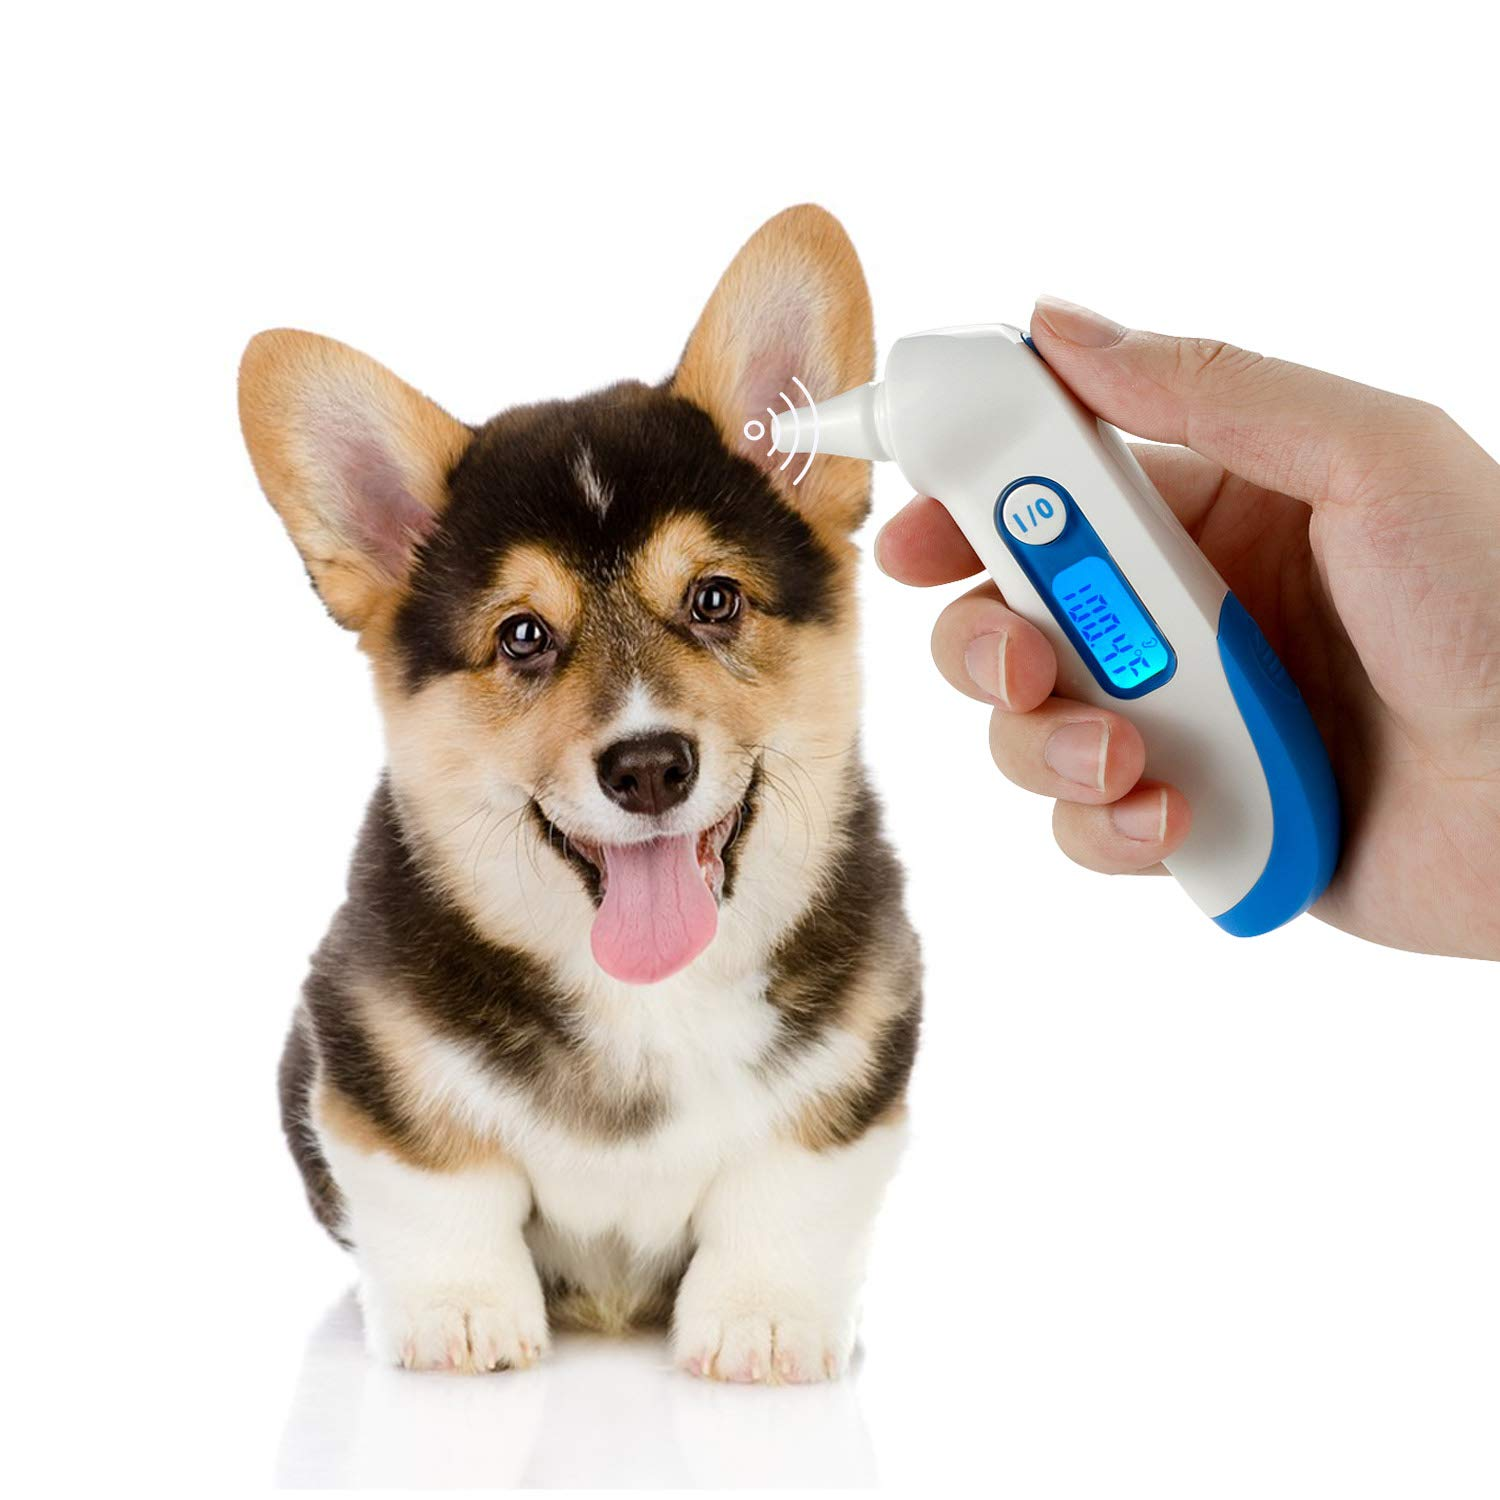 Pet Clinic Infrared Ear Thermometer for Dog Cat, Veterinary Thermometer Measure Ear Canal Temperature in 1s, Suitable for All Pets C/F switchable by iCare-Pet